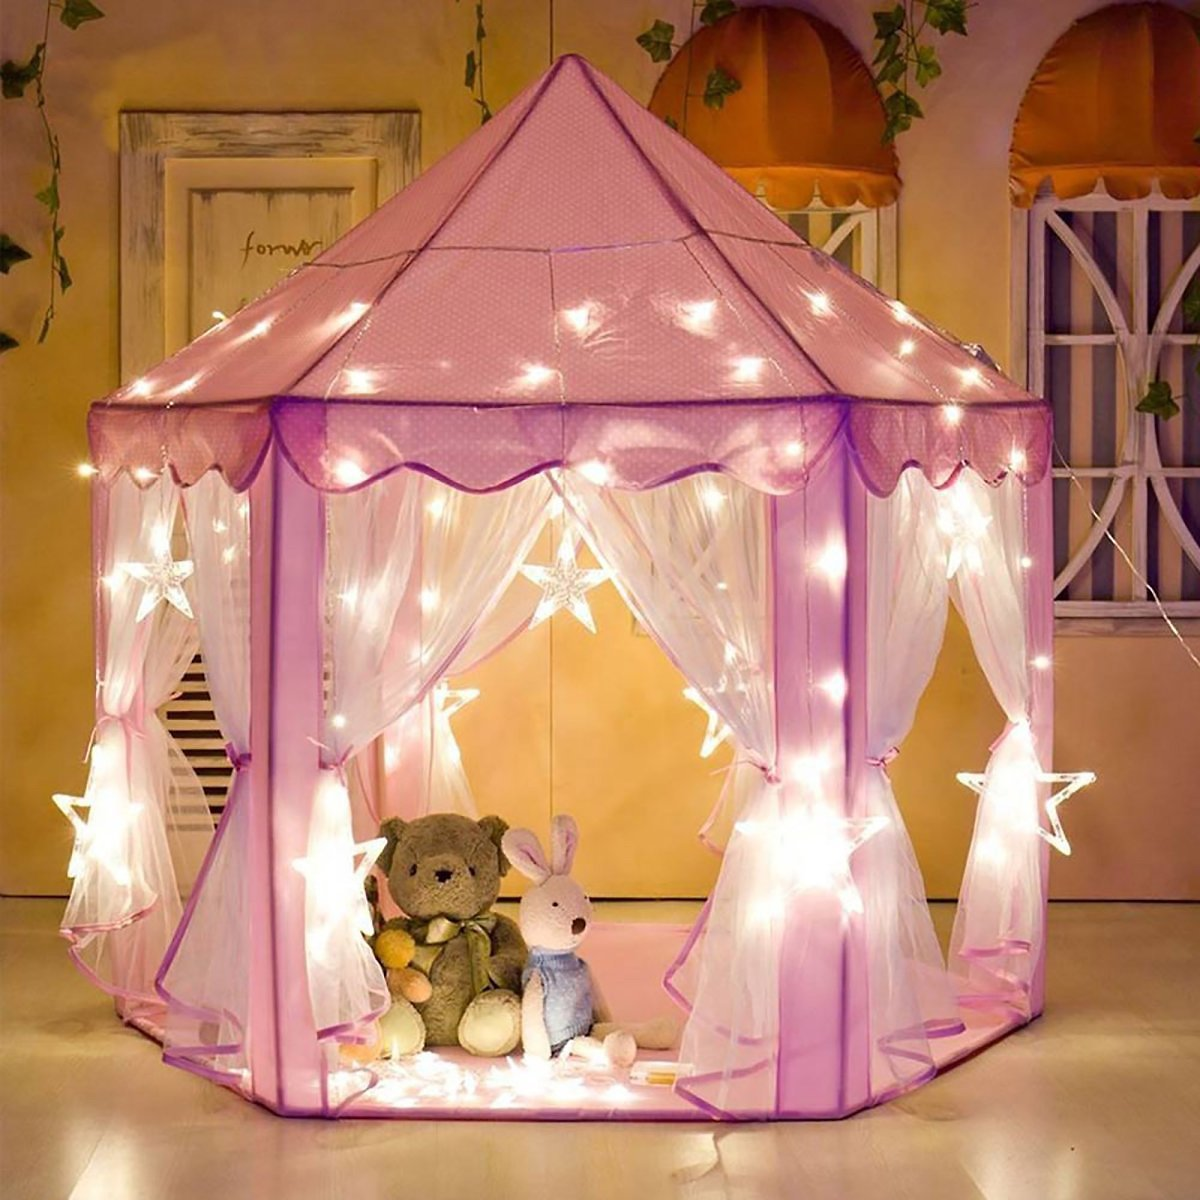 Play Tent for Girls Pink Birthday Gift (LED Star Lights)